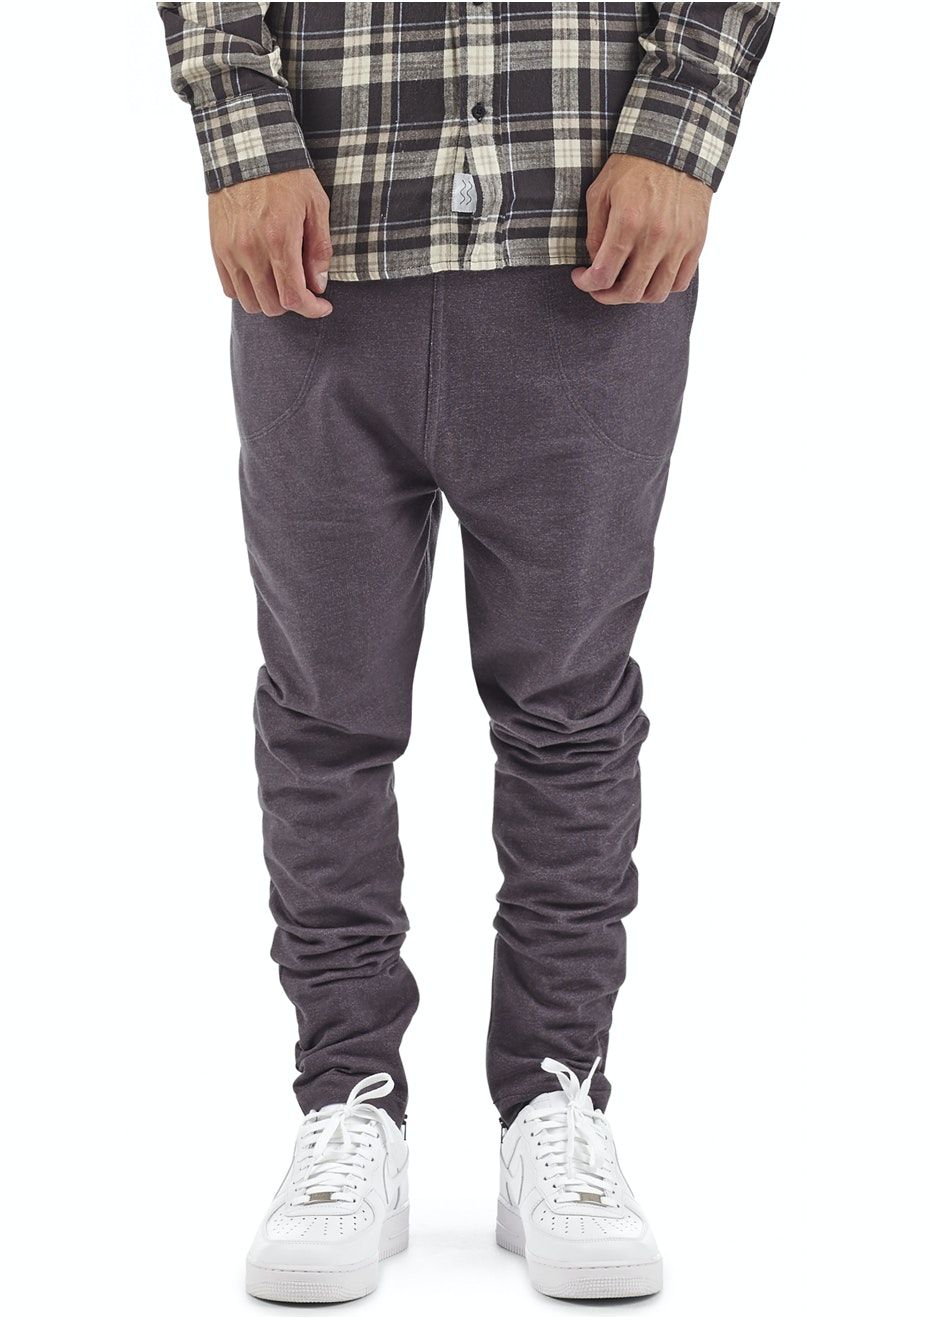 I Love Ugly - Zespy Fleece Pant - Aged Black